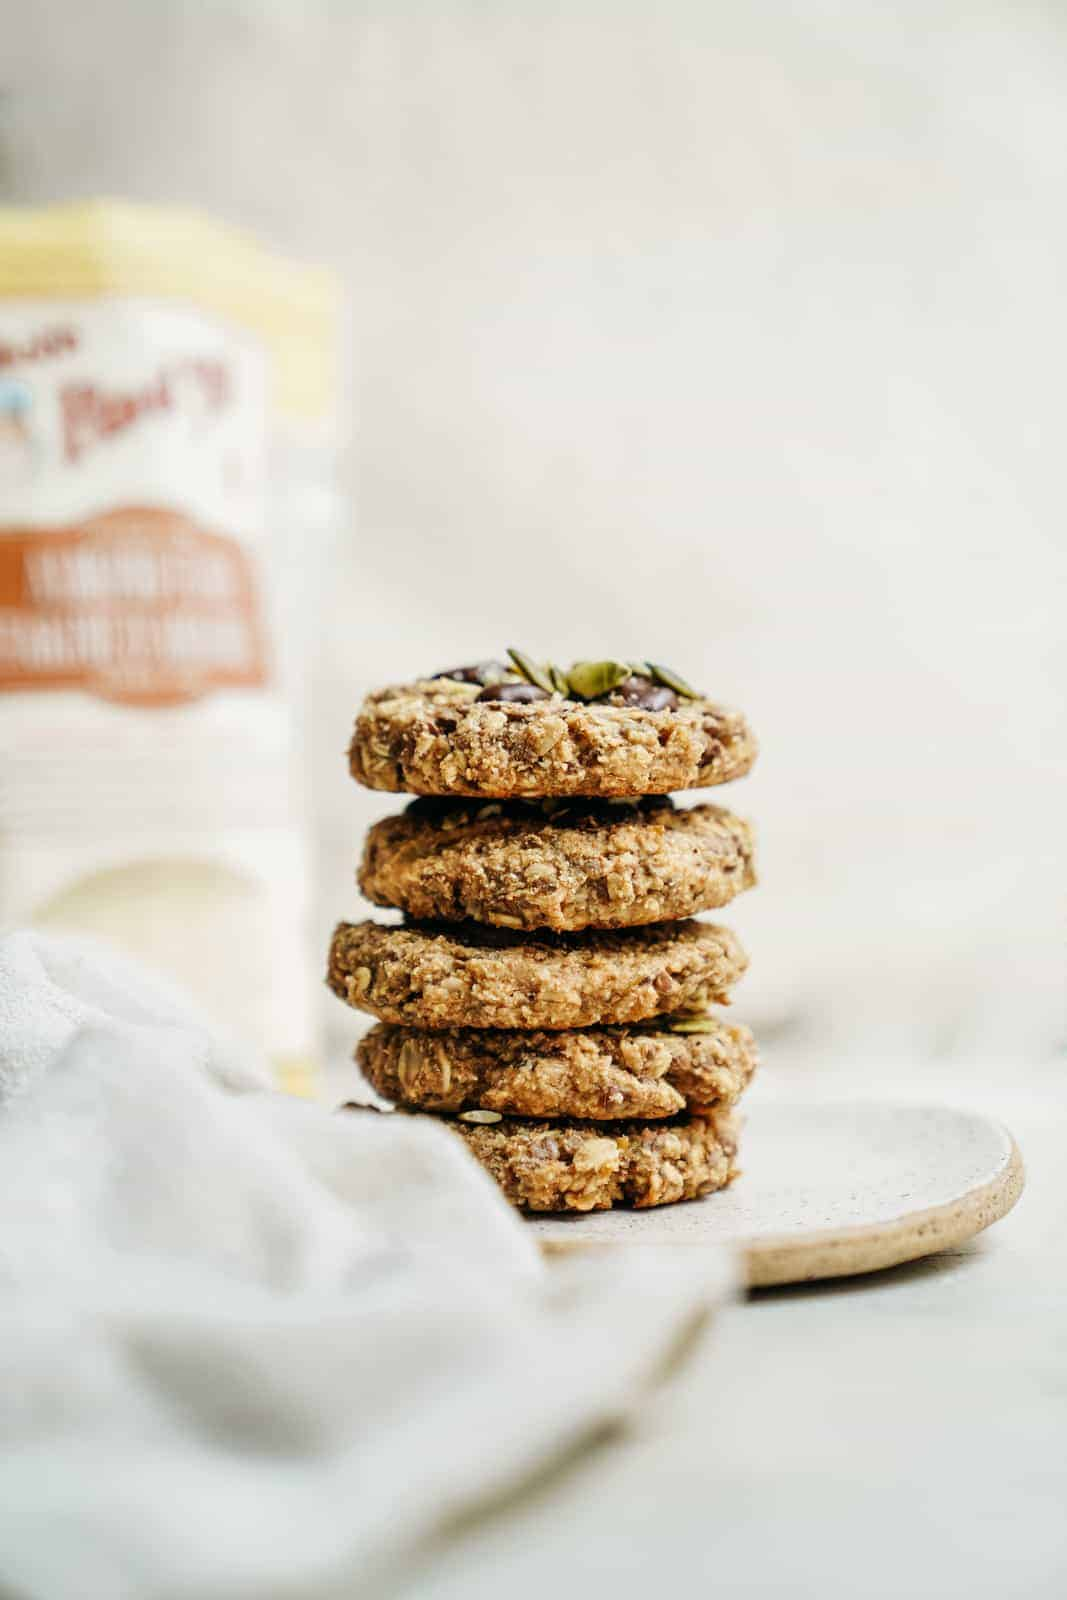 Breakfast Cookies Recipe stacked on a plate